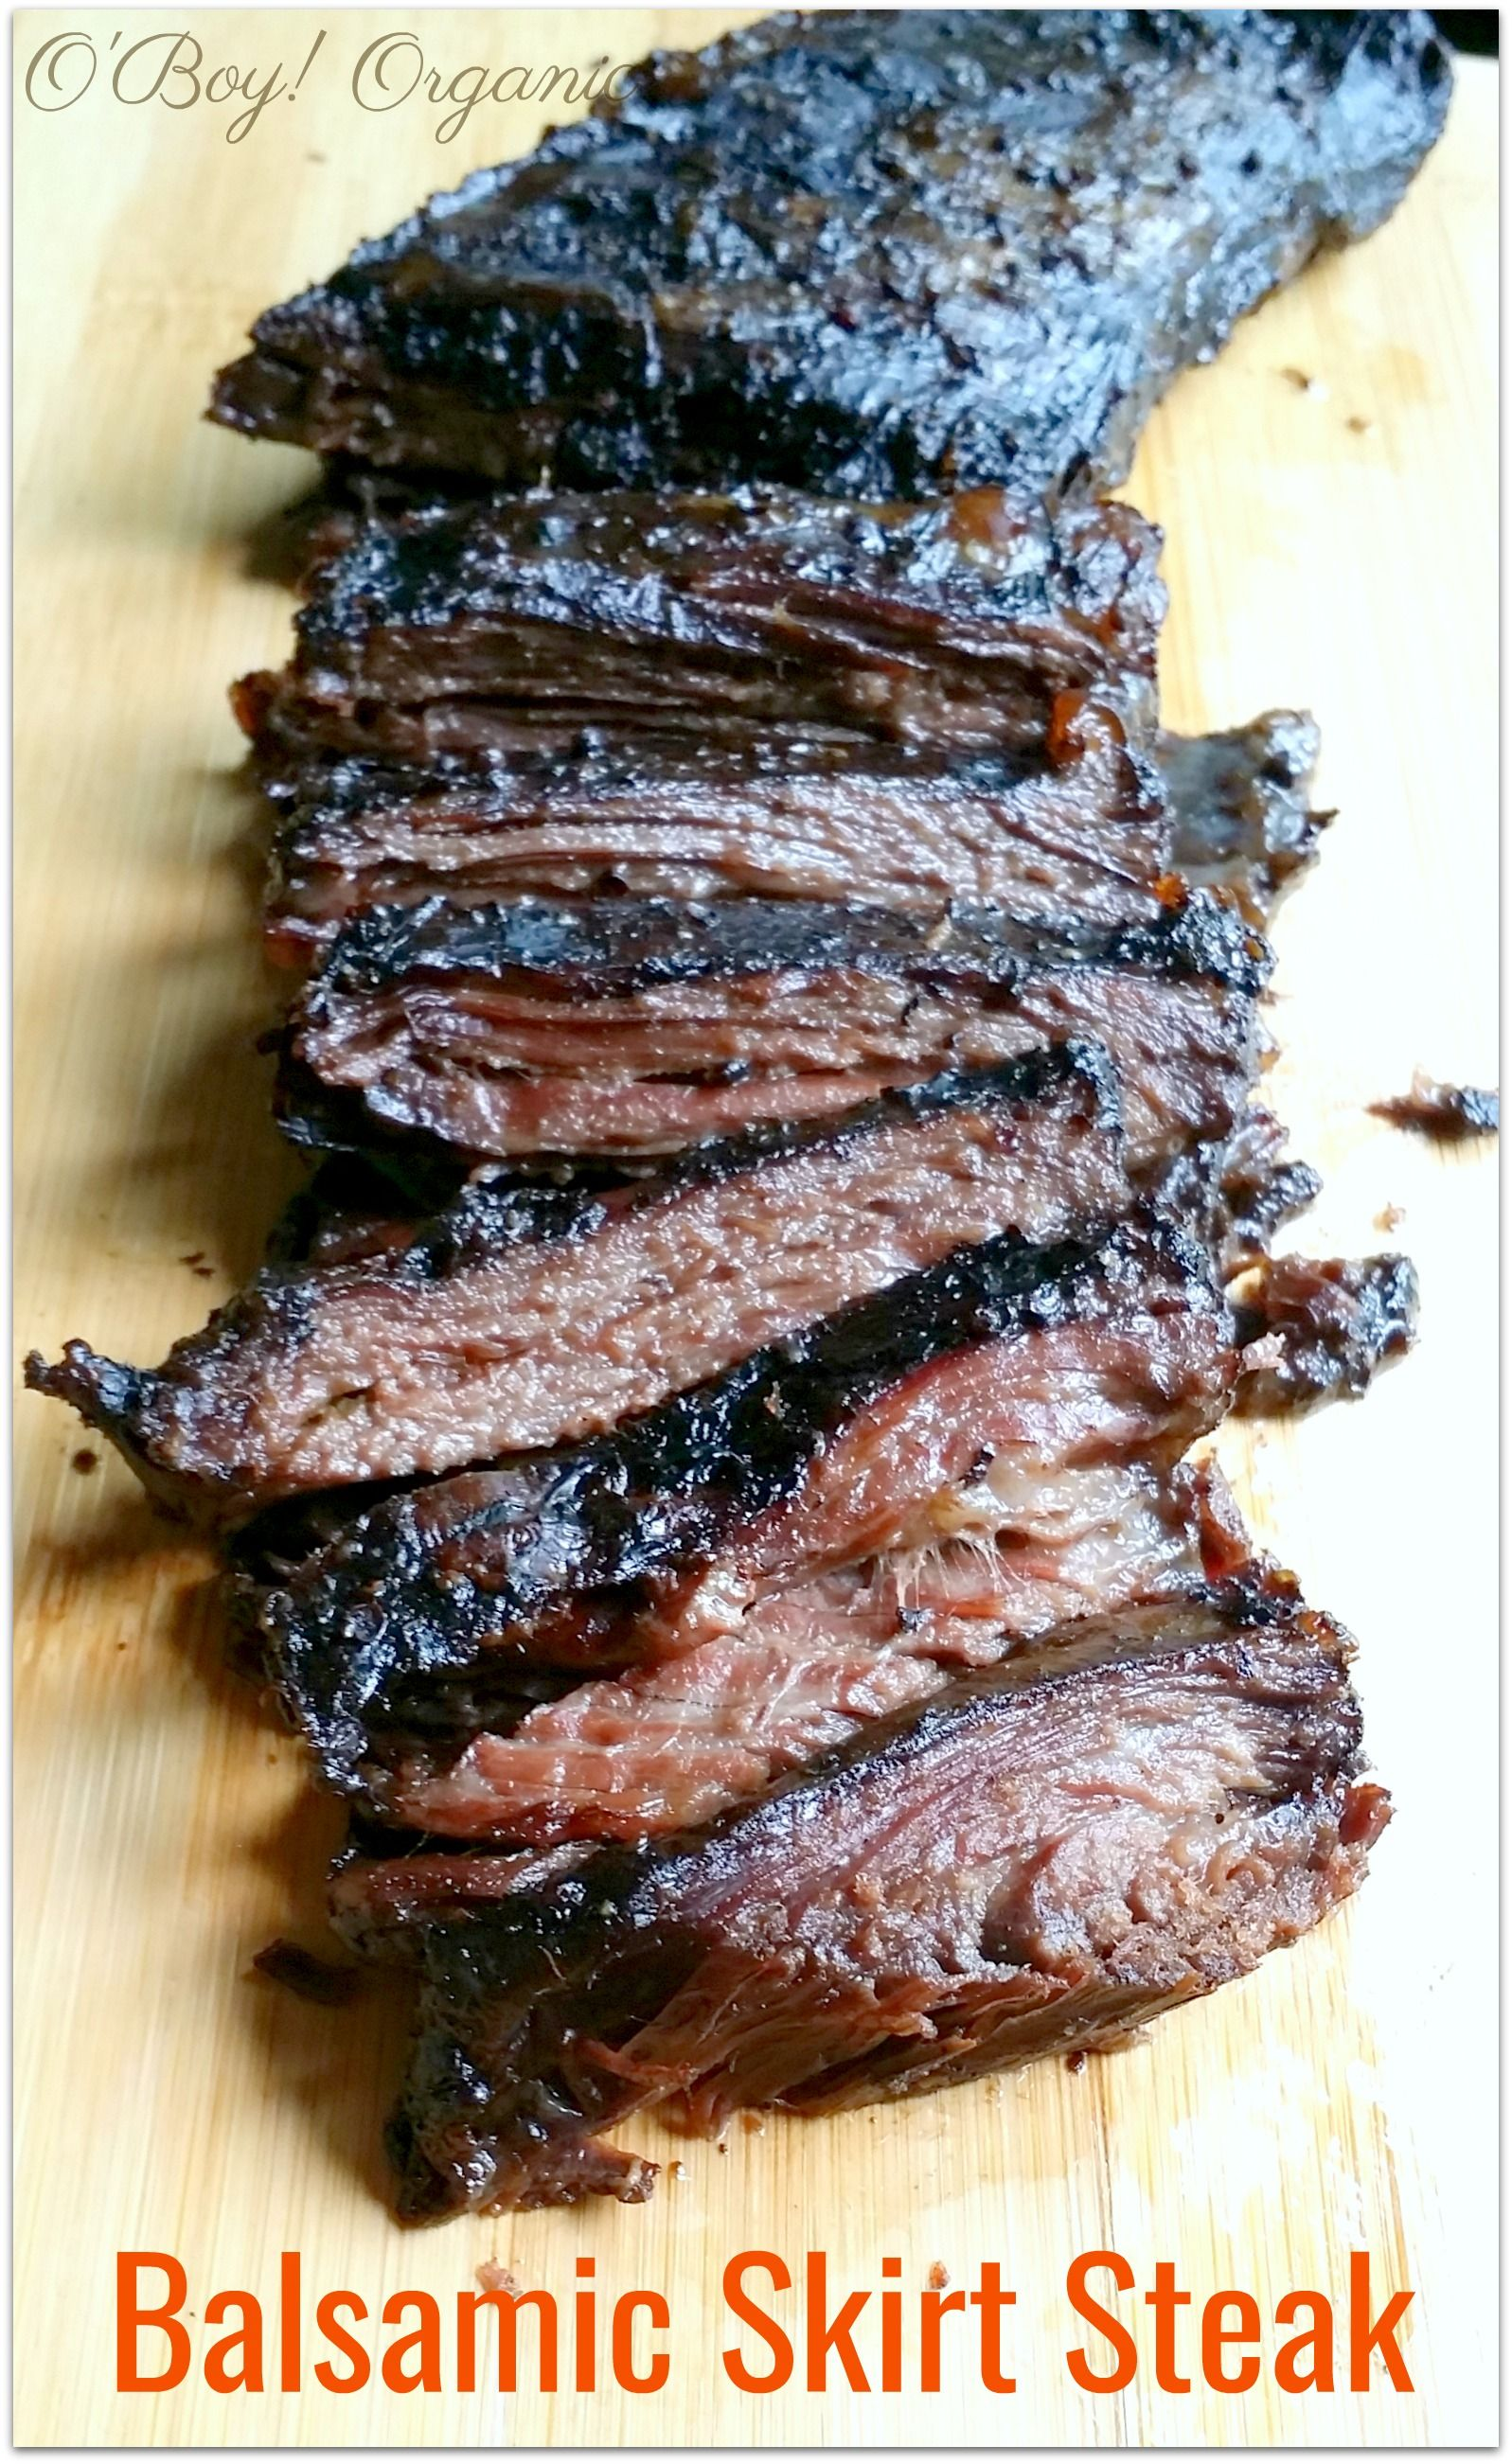 This 5 Minute balsamic skirt steak marinade will make weeknight meals easier or perfect for a dinner party. Can even be made ahead of time and freeze #marinadeforskirtsteak